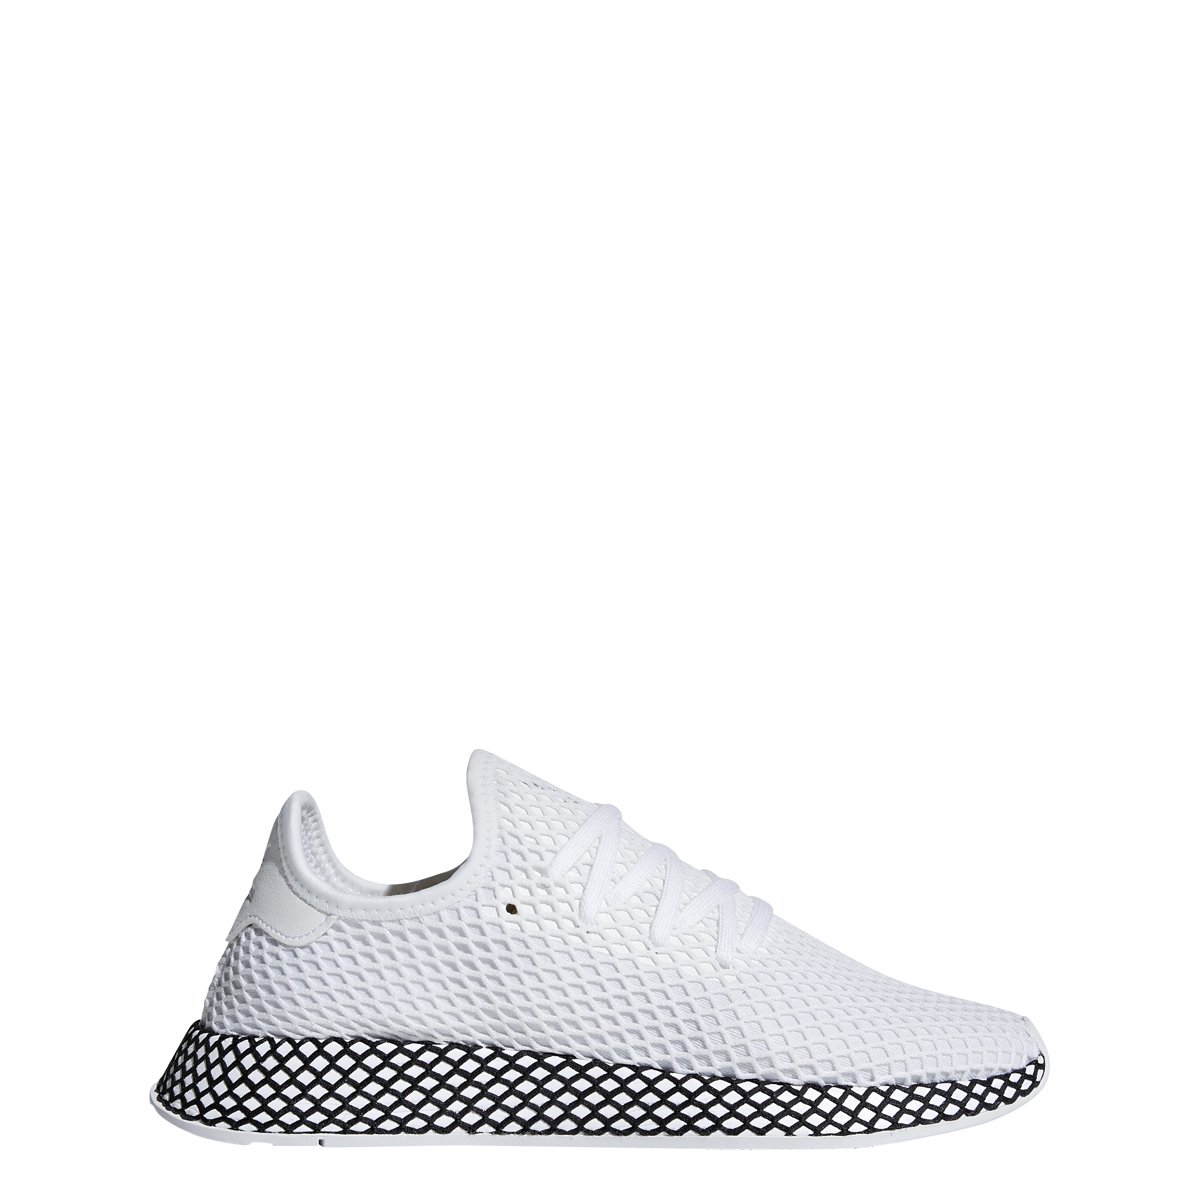 adidas Mens DEERUPT Runner White/White/Black - B41767 (13)